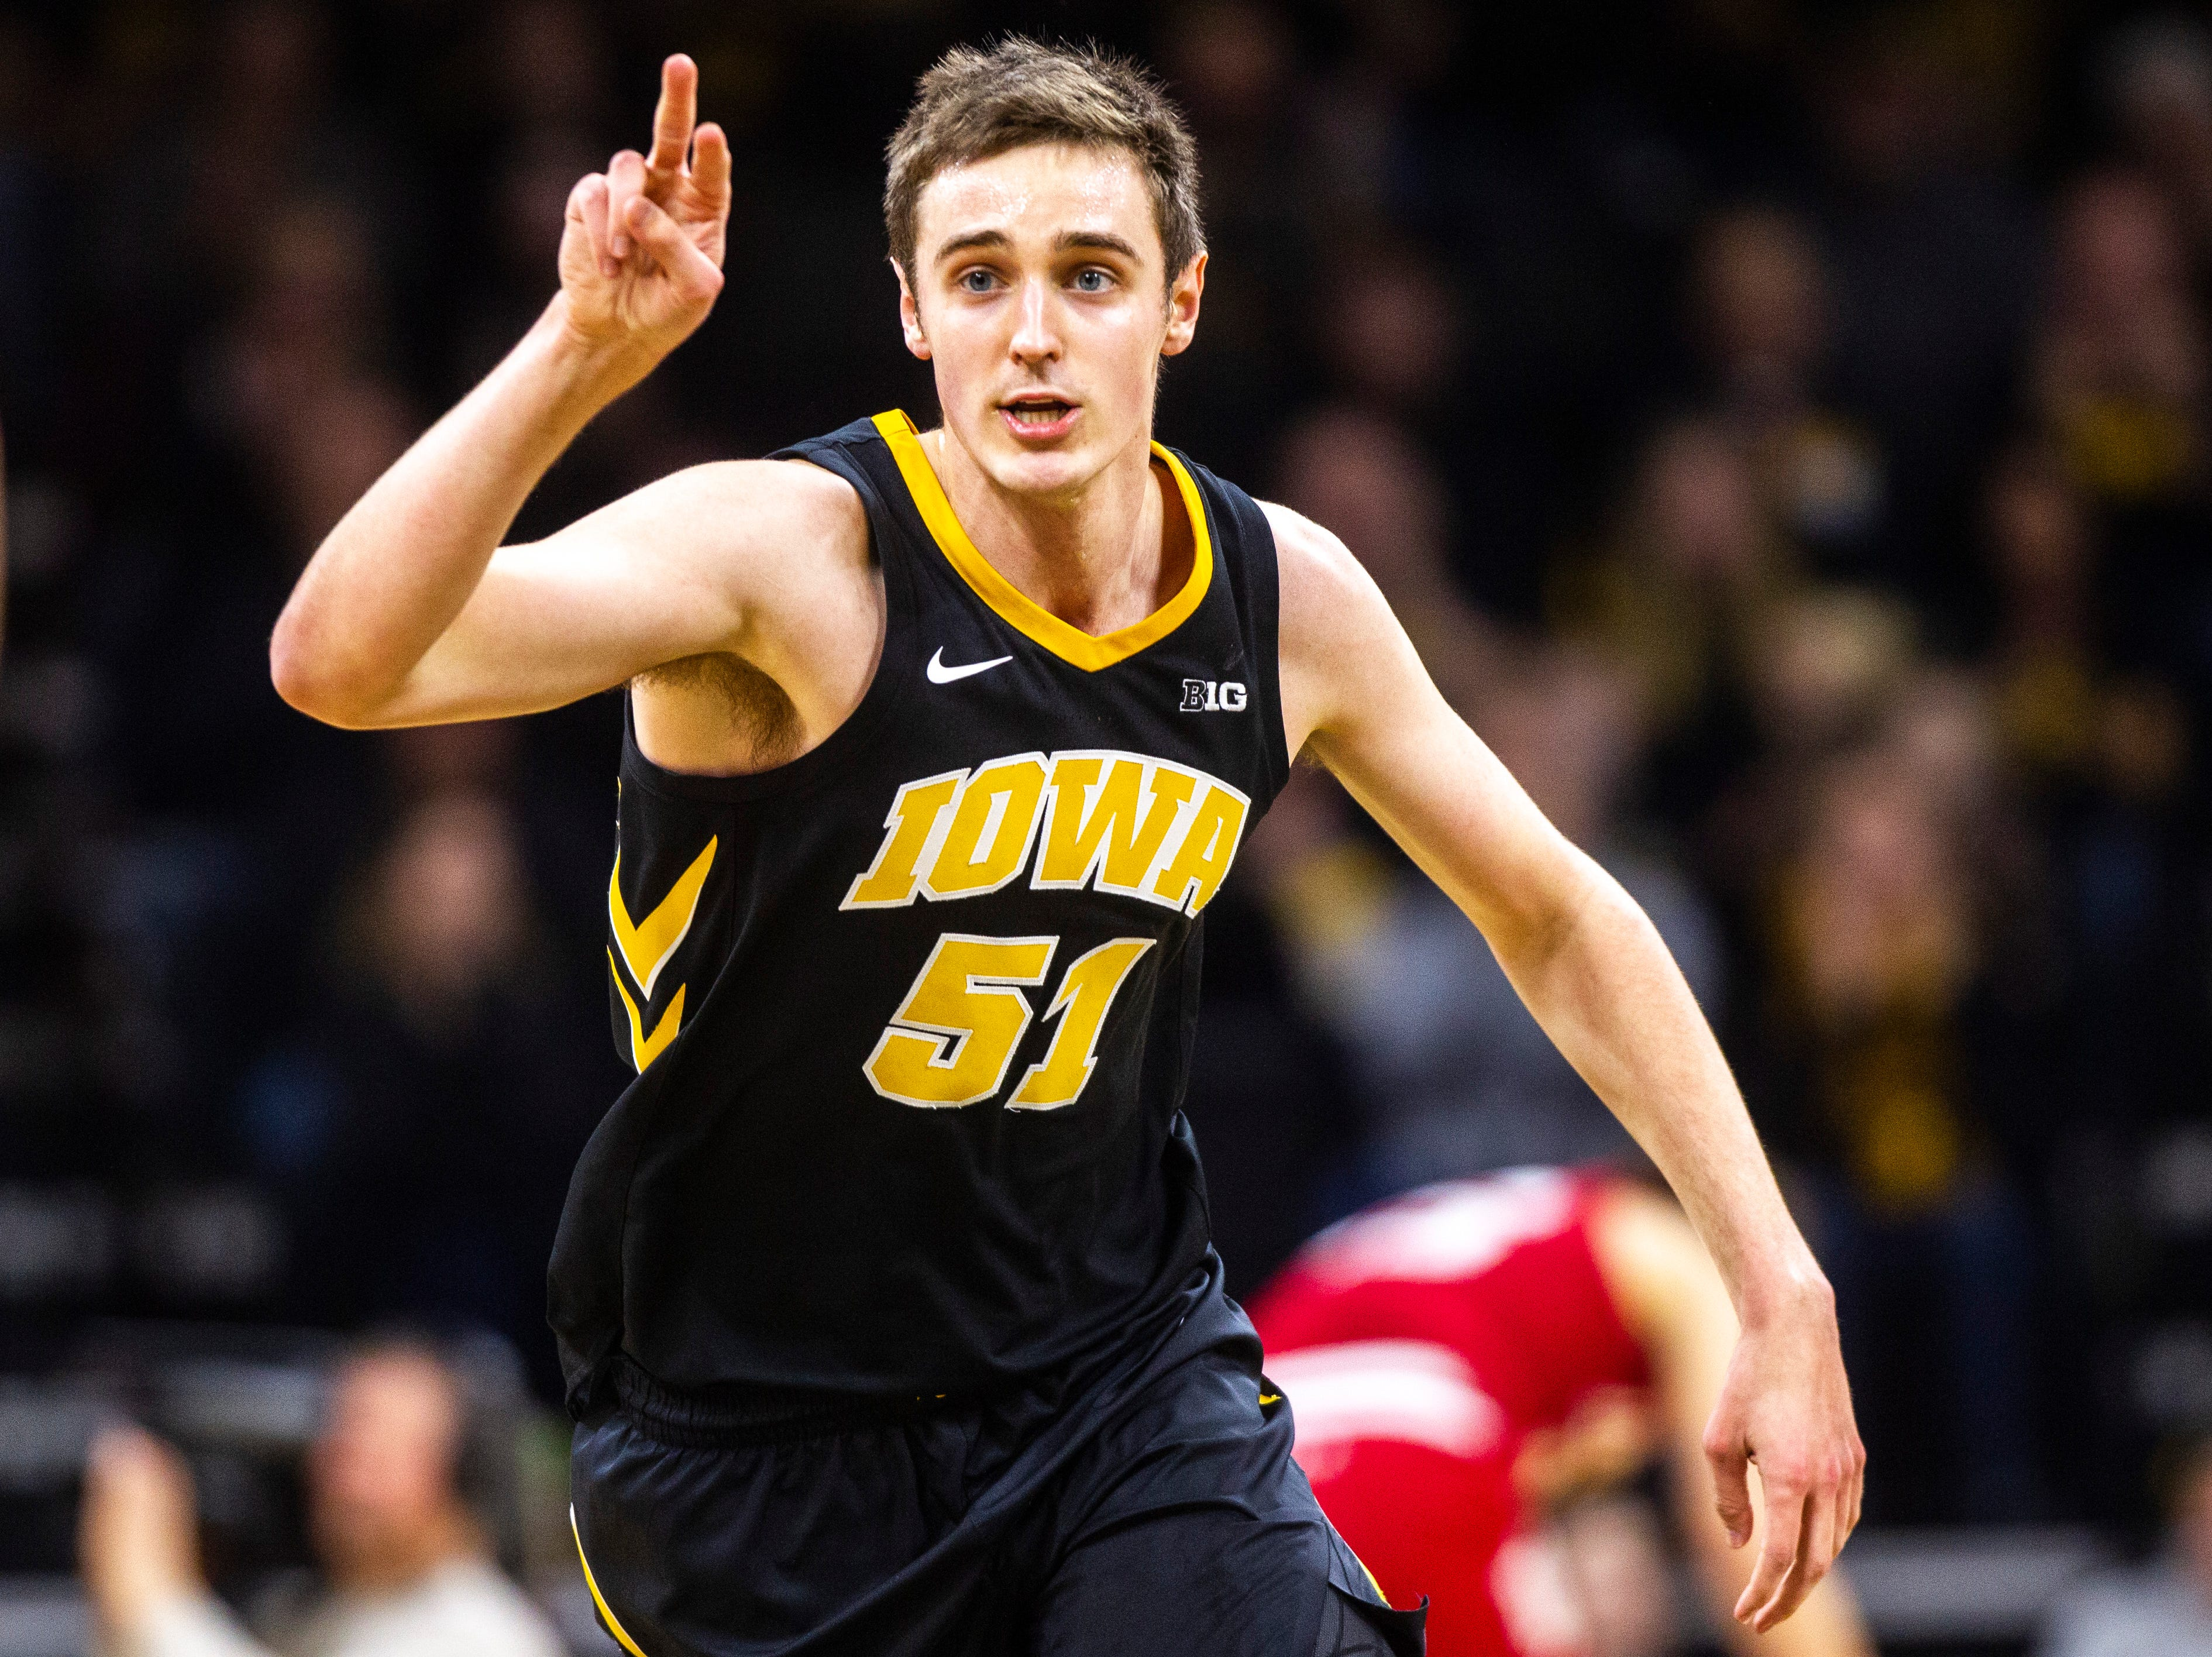 Iowa forward Nicholas Baer (51) gestures to teammates after making a 3-point basket during a NCAA Big Ten Conference men's basketball game on Friday, Feb. 22, 2019 at Carver-Hawkeye Arena in Iowa City, Iowa.